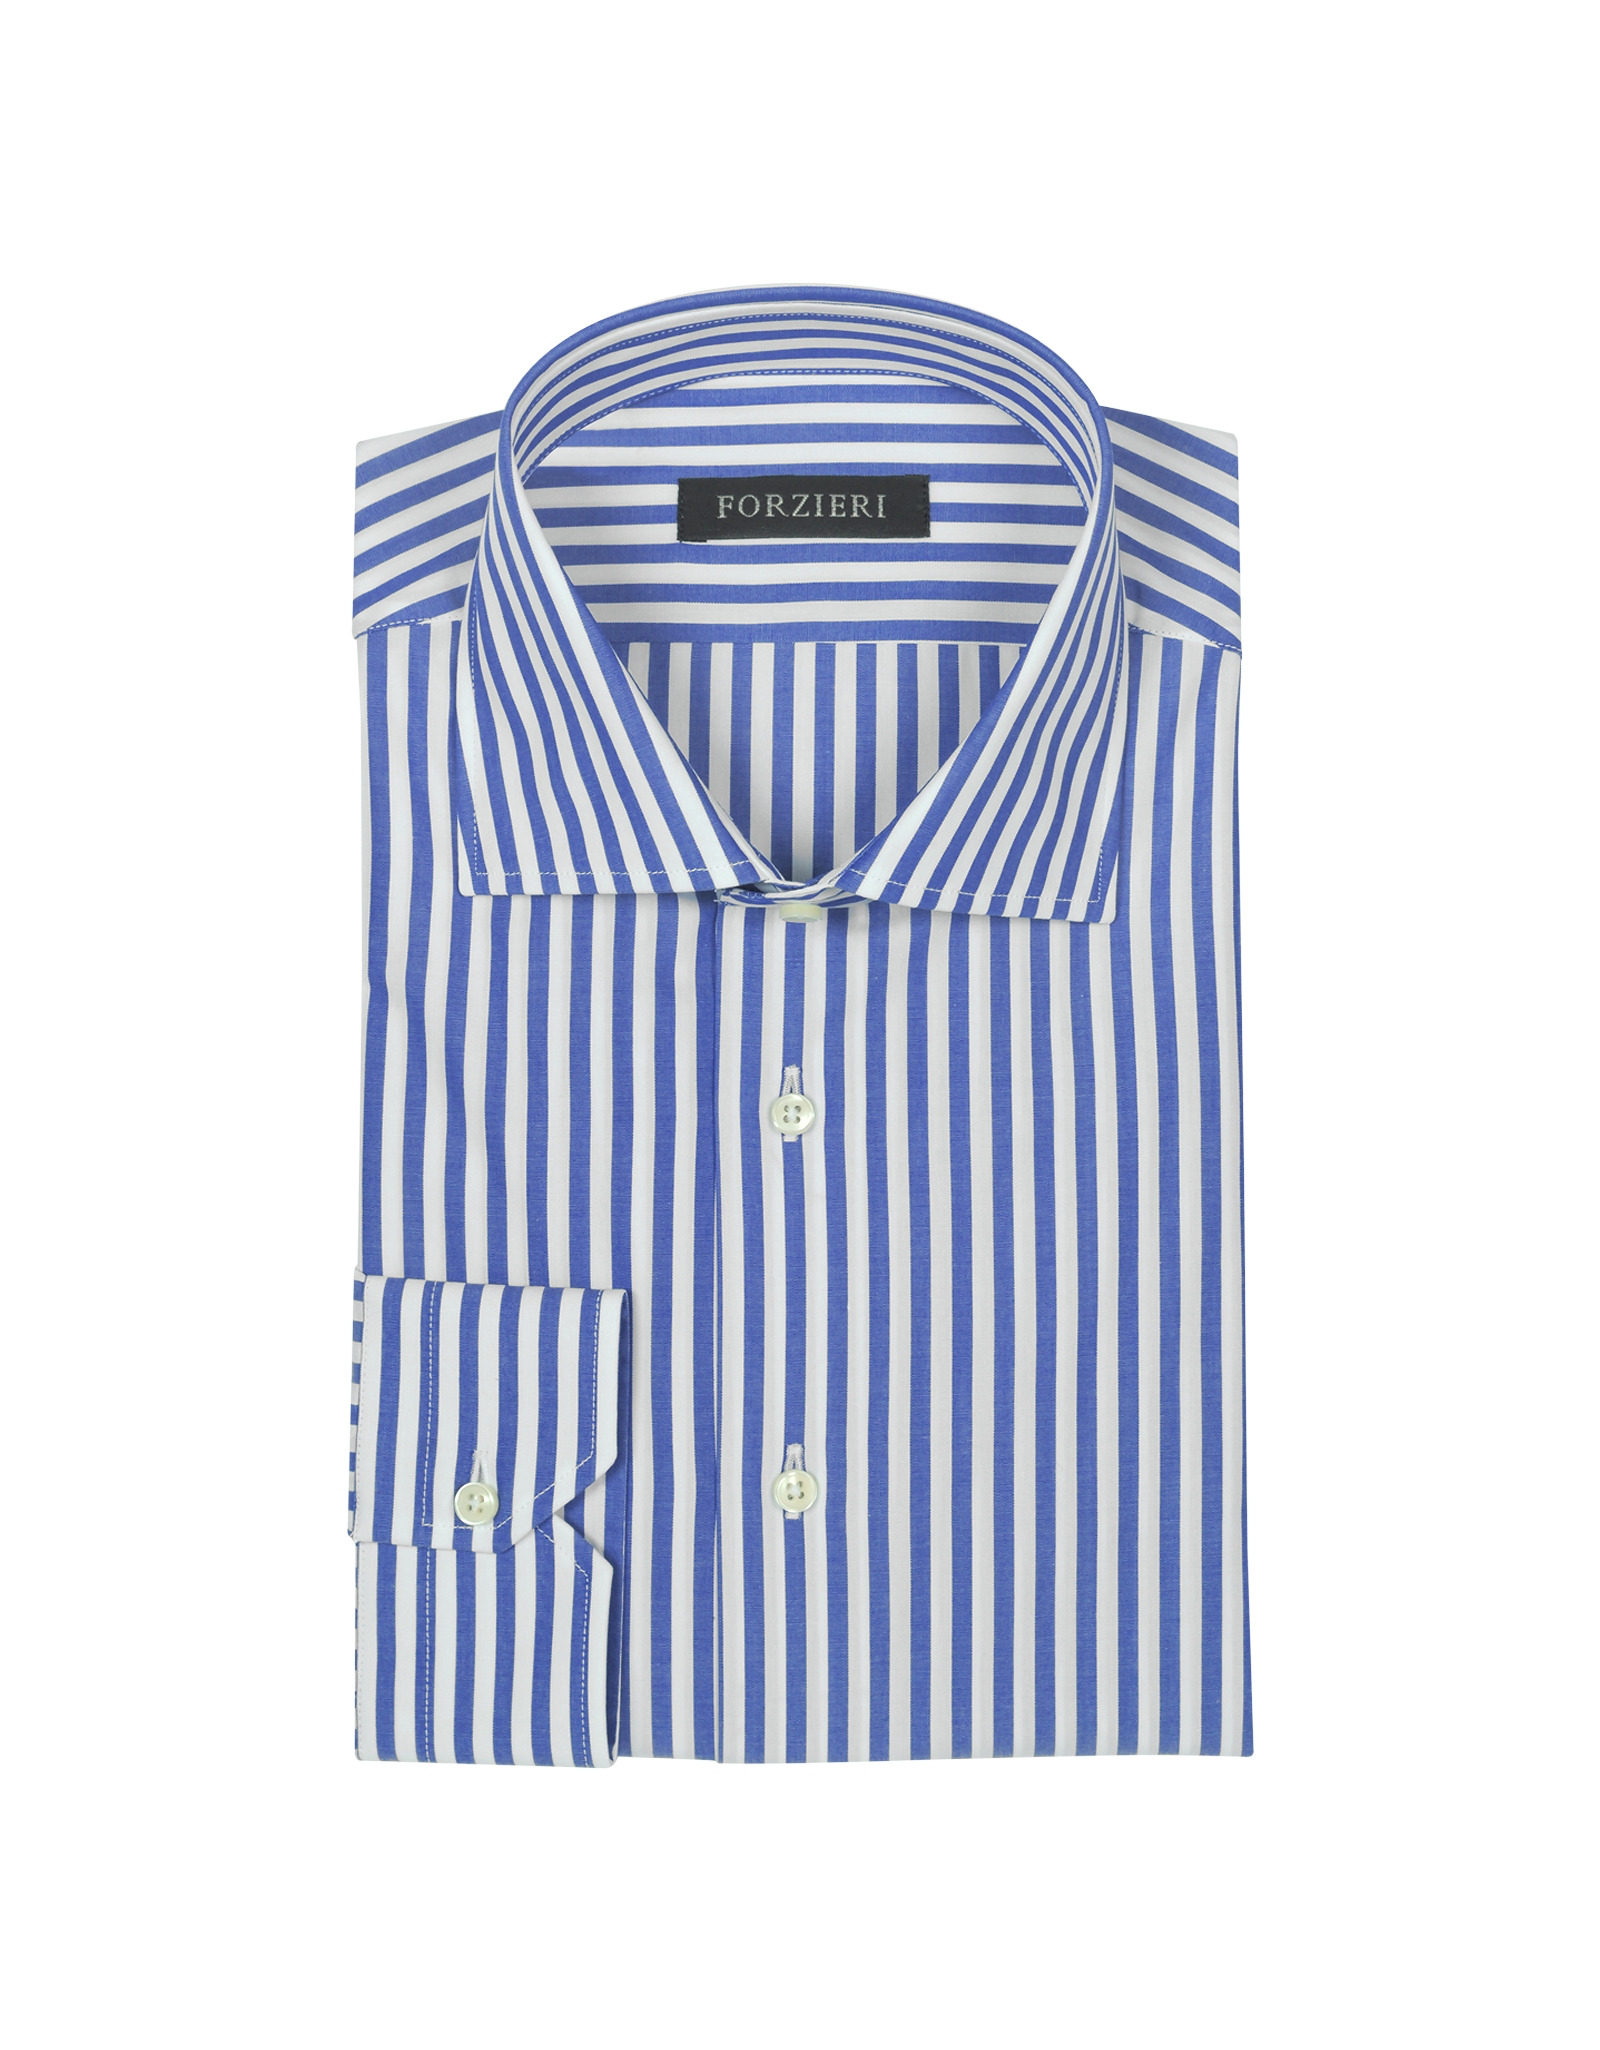 Forzieri Blue And White Striped Cotton Dress Shirt In Blue